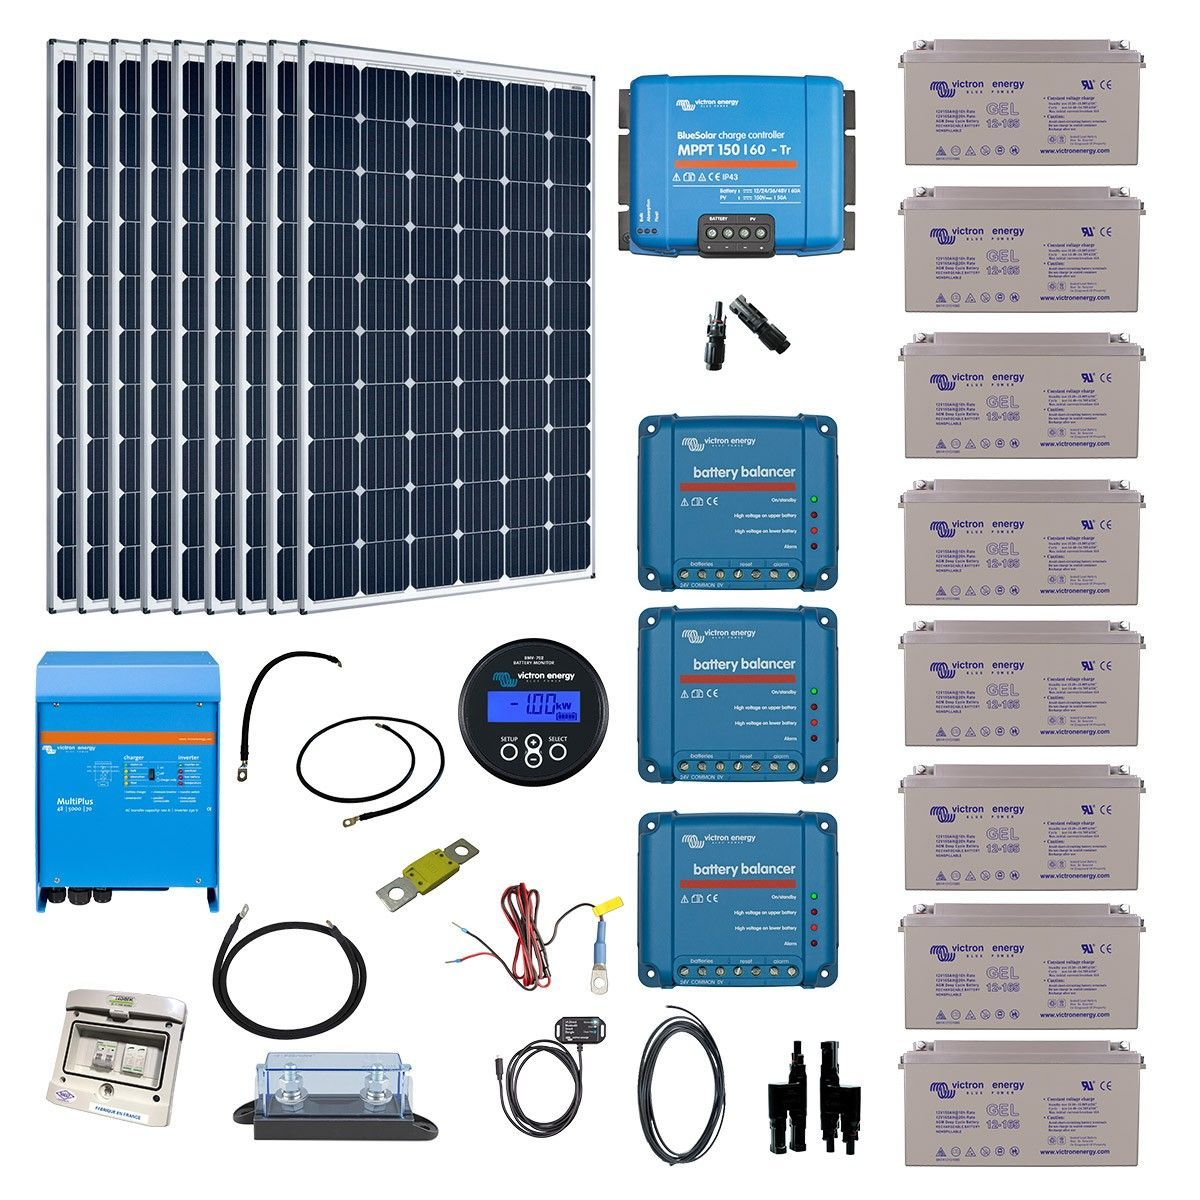 kit solaire site isol 220v excellent kit solaire solarworld raccordable au rseau w with kit. Black Bedroom Furniture Sets. Home Design Ideas